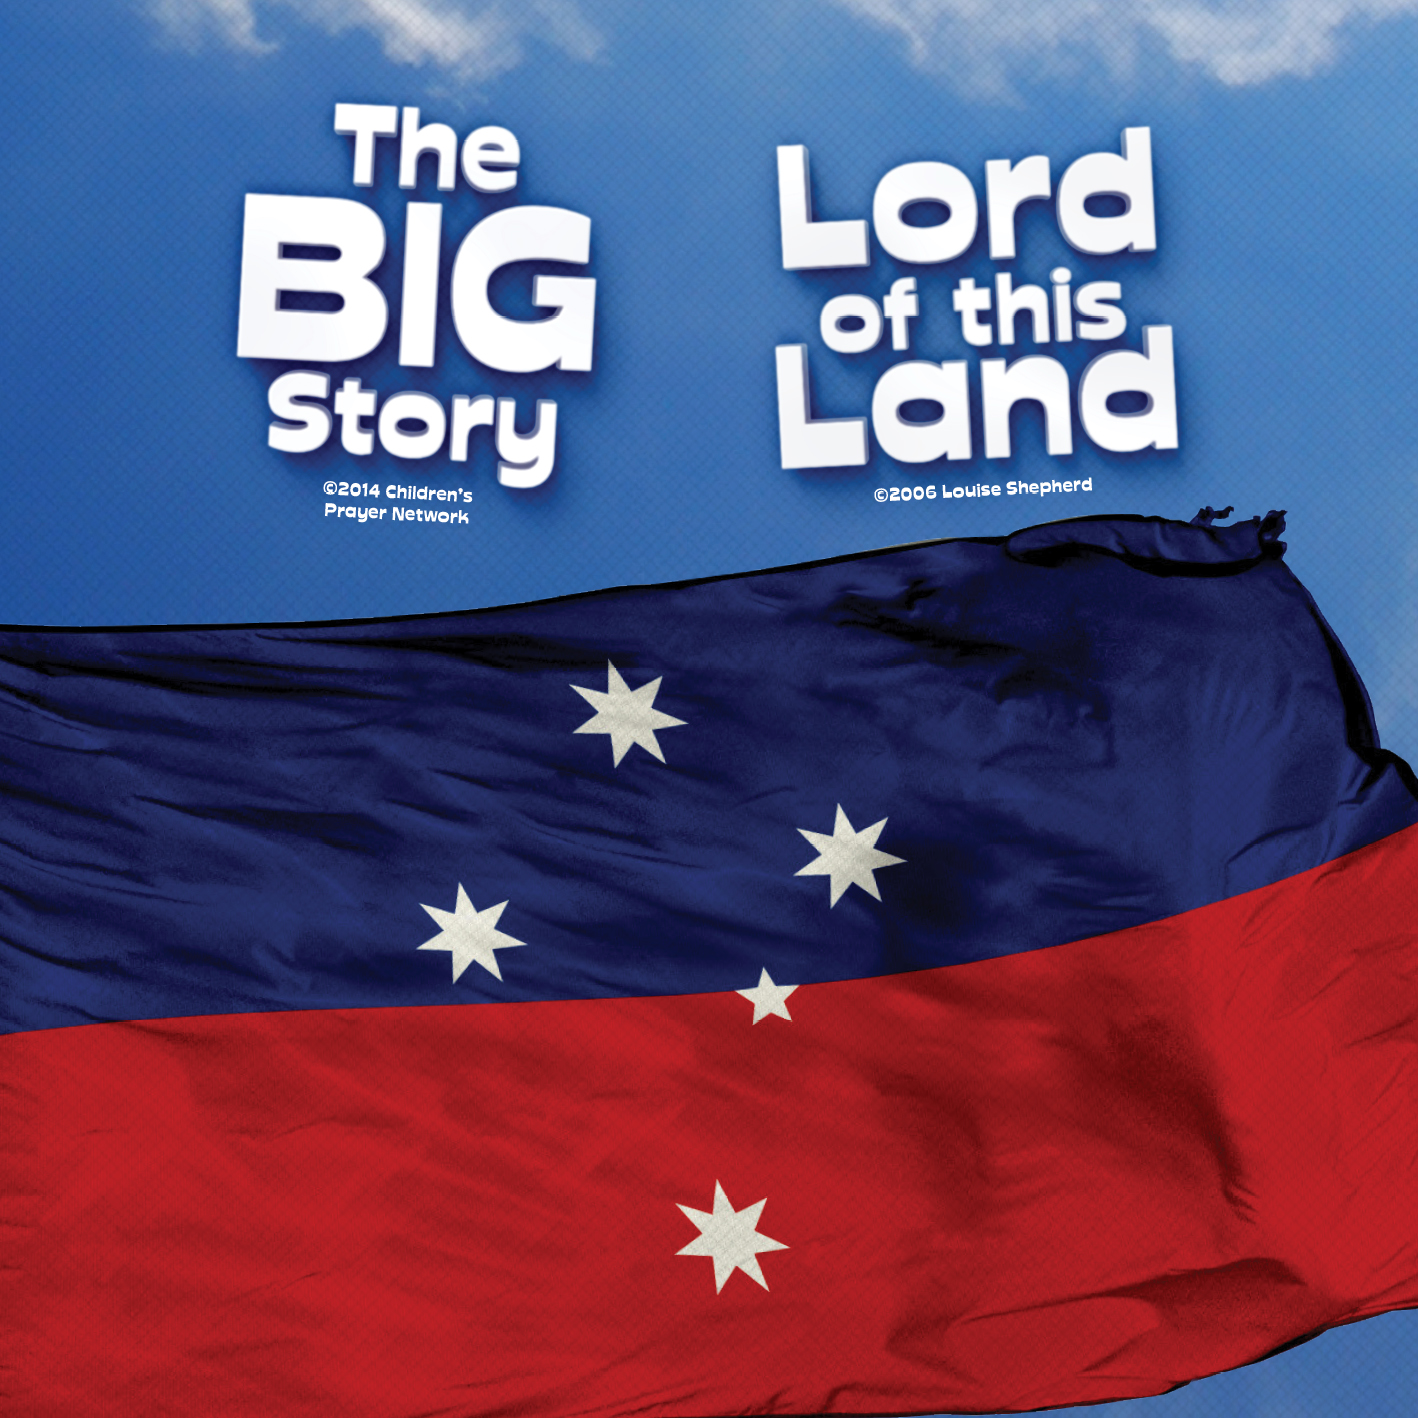 Lord of This Land Cover.jpg